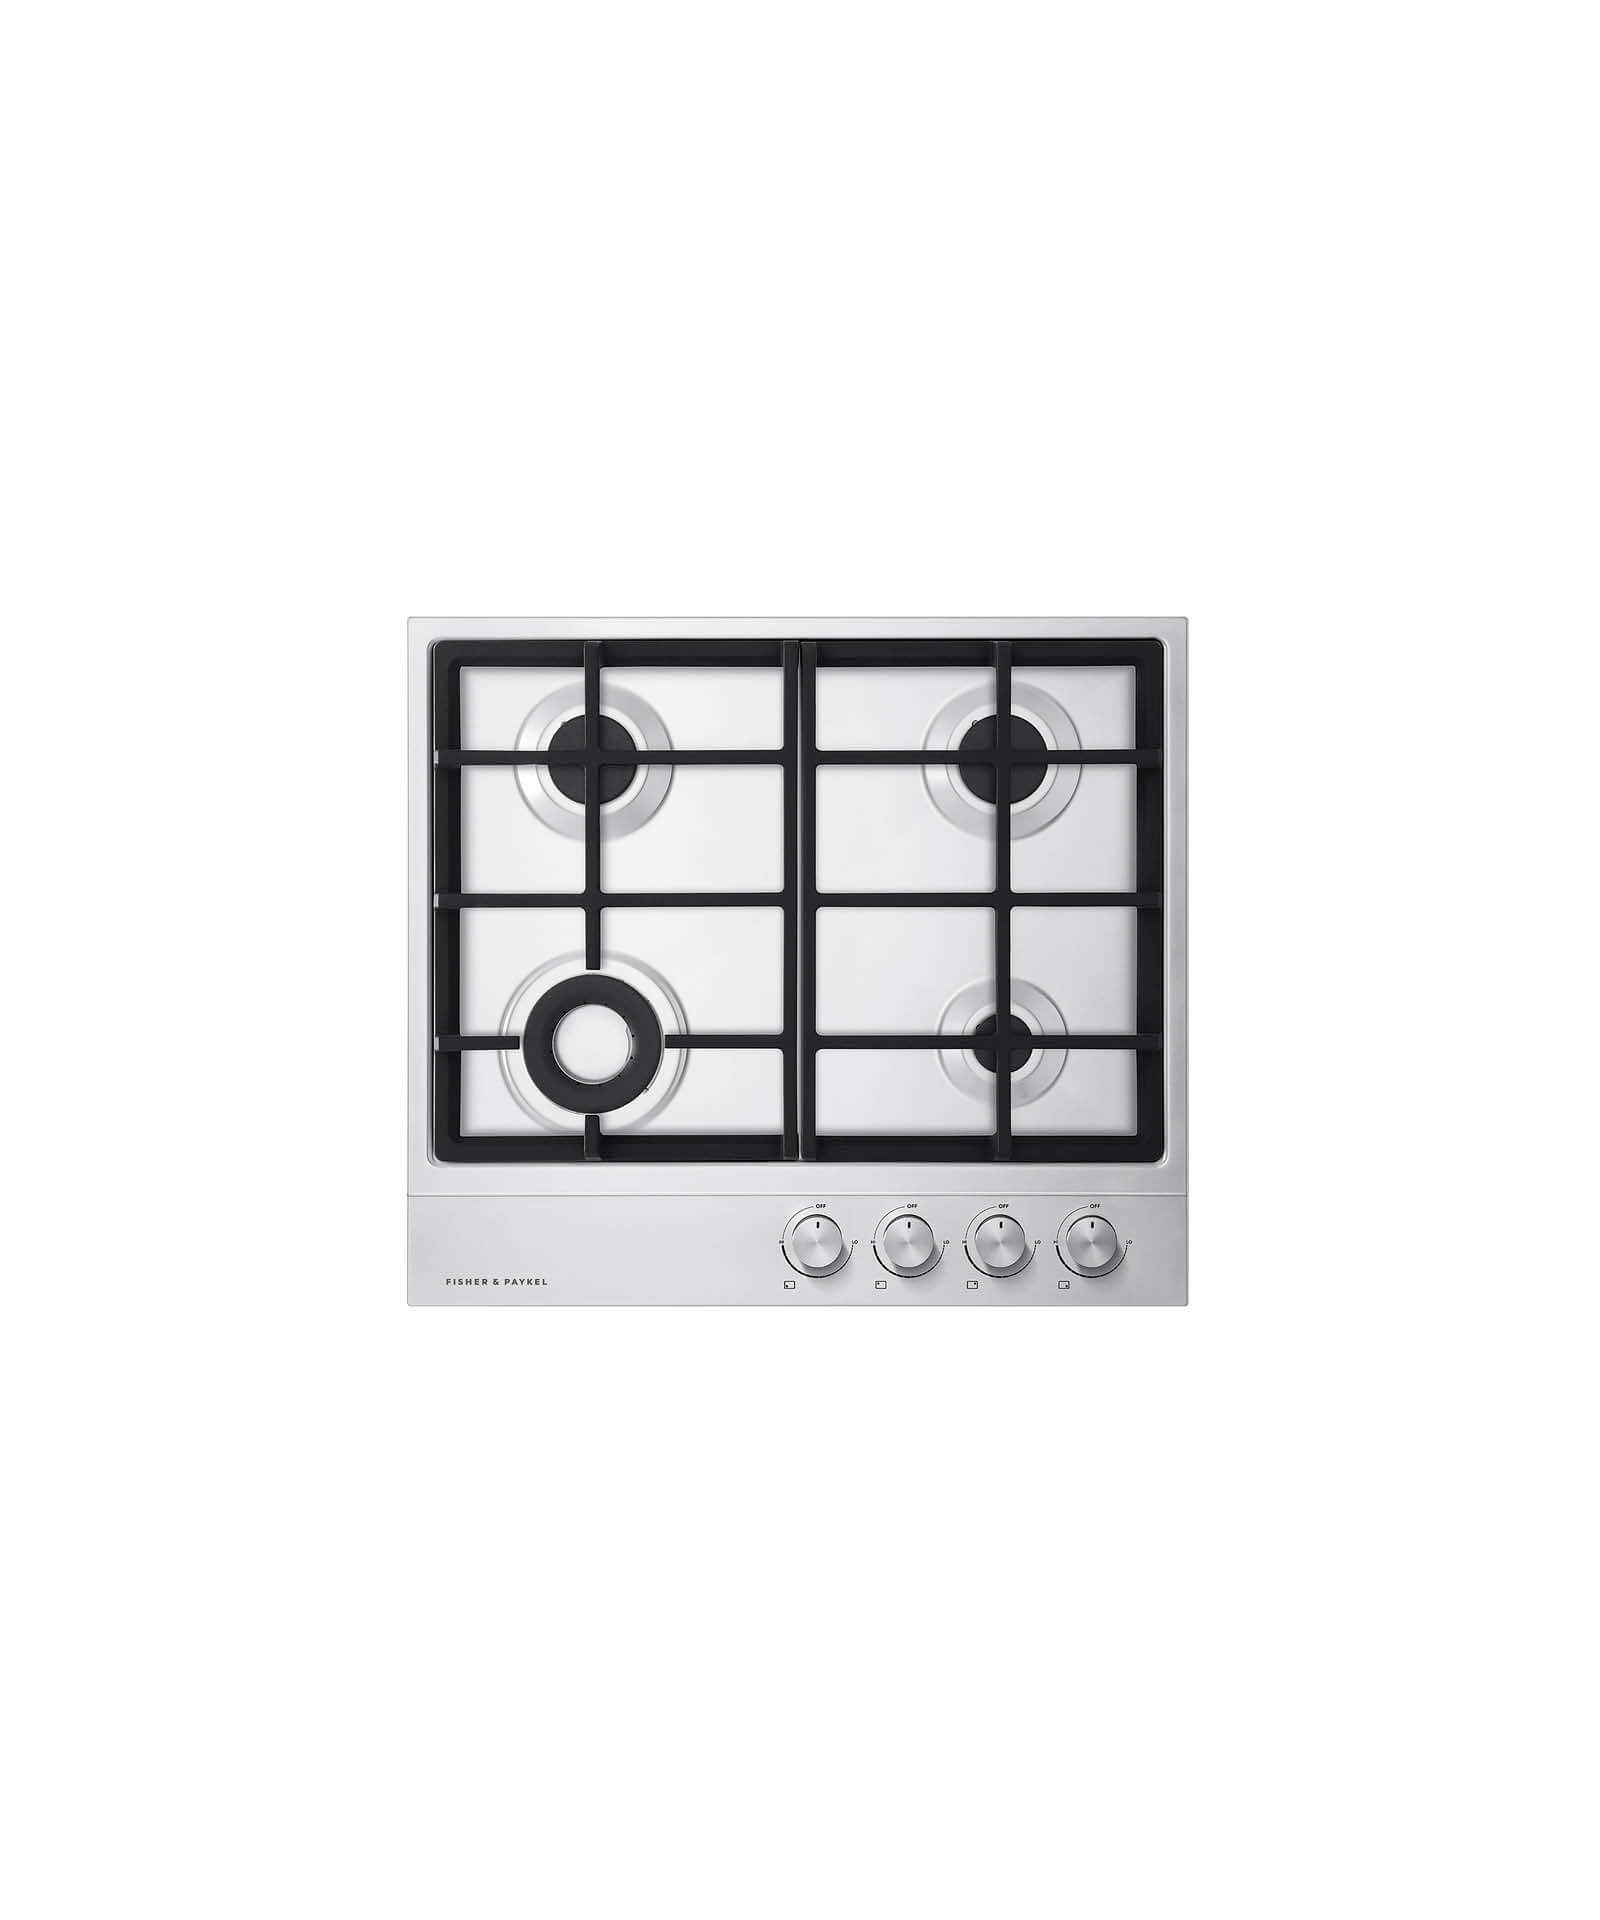 "Model: CG244DNGX1_N | Fisher and Paykel Gas on Steel Cooktop 24"" 4 Burner"